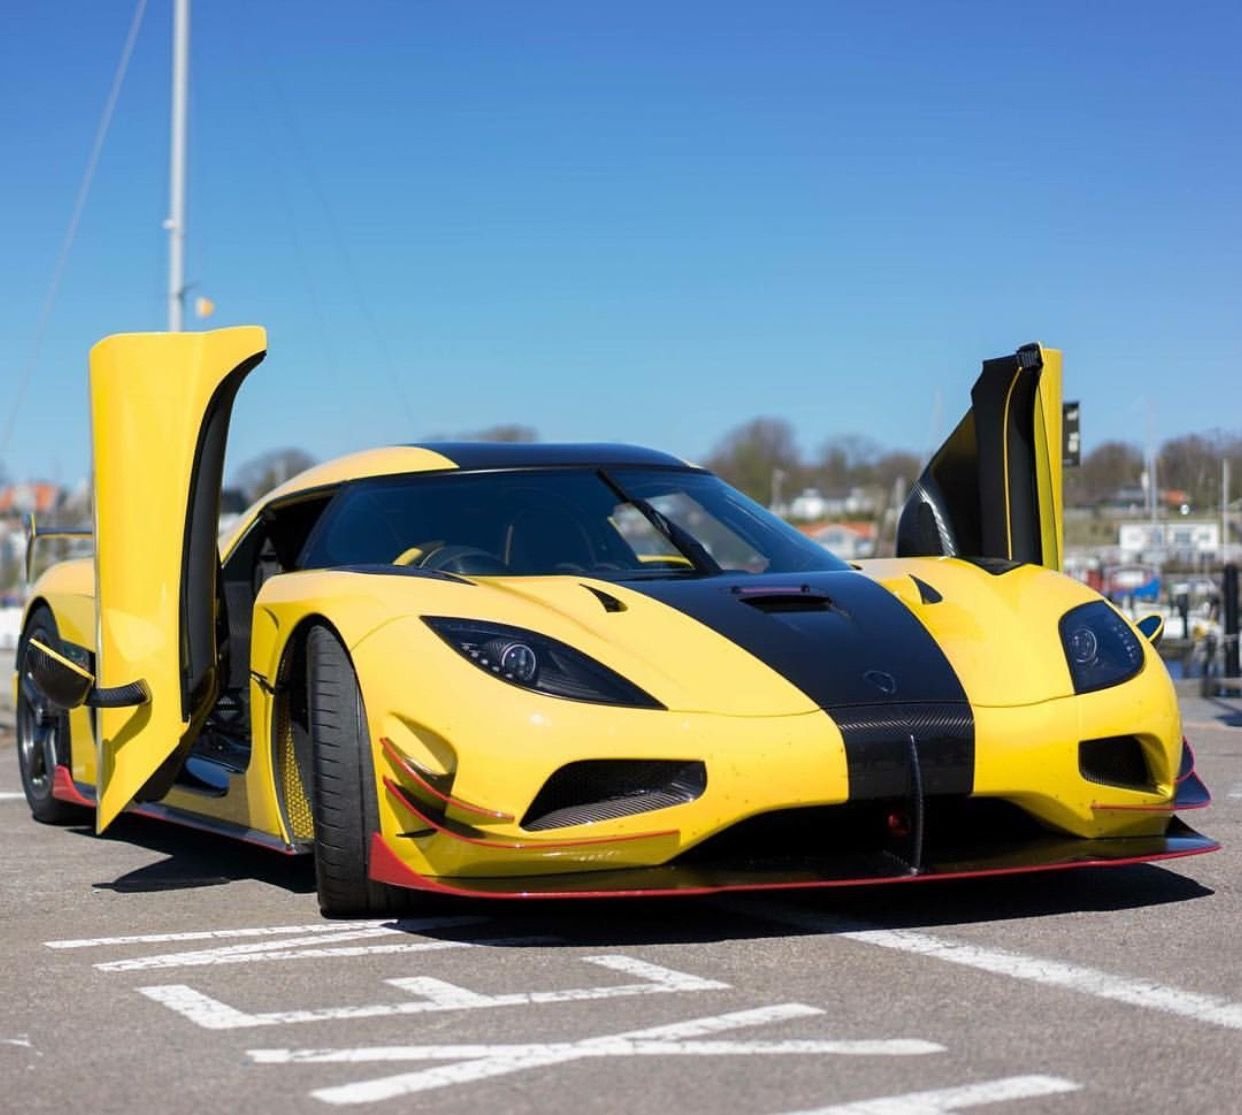 Koenigsegg Agera Rs Red: Koenigsegg Agera ML (RS) Painted In Yellow W/ Exposed